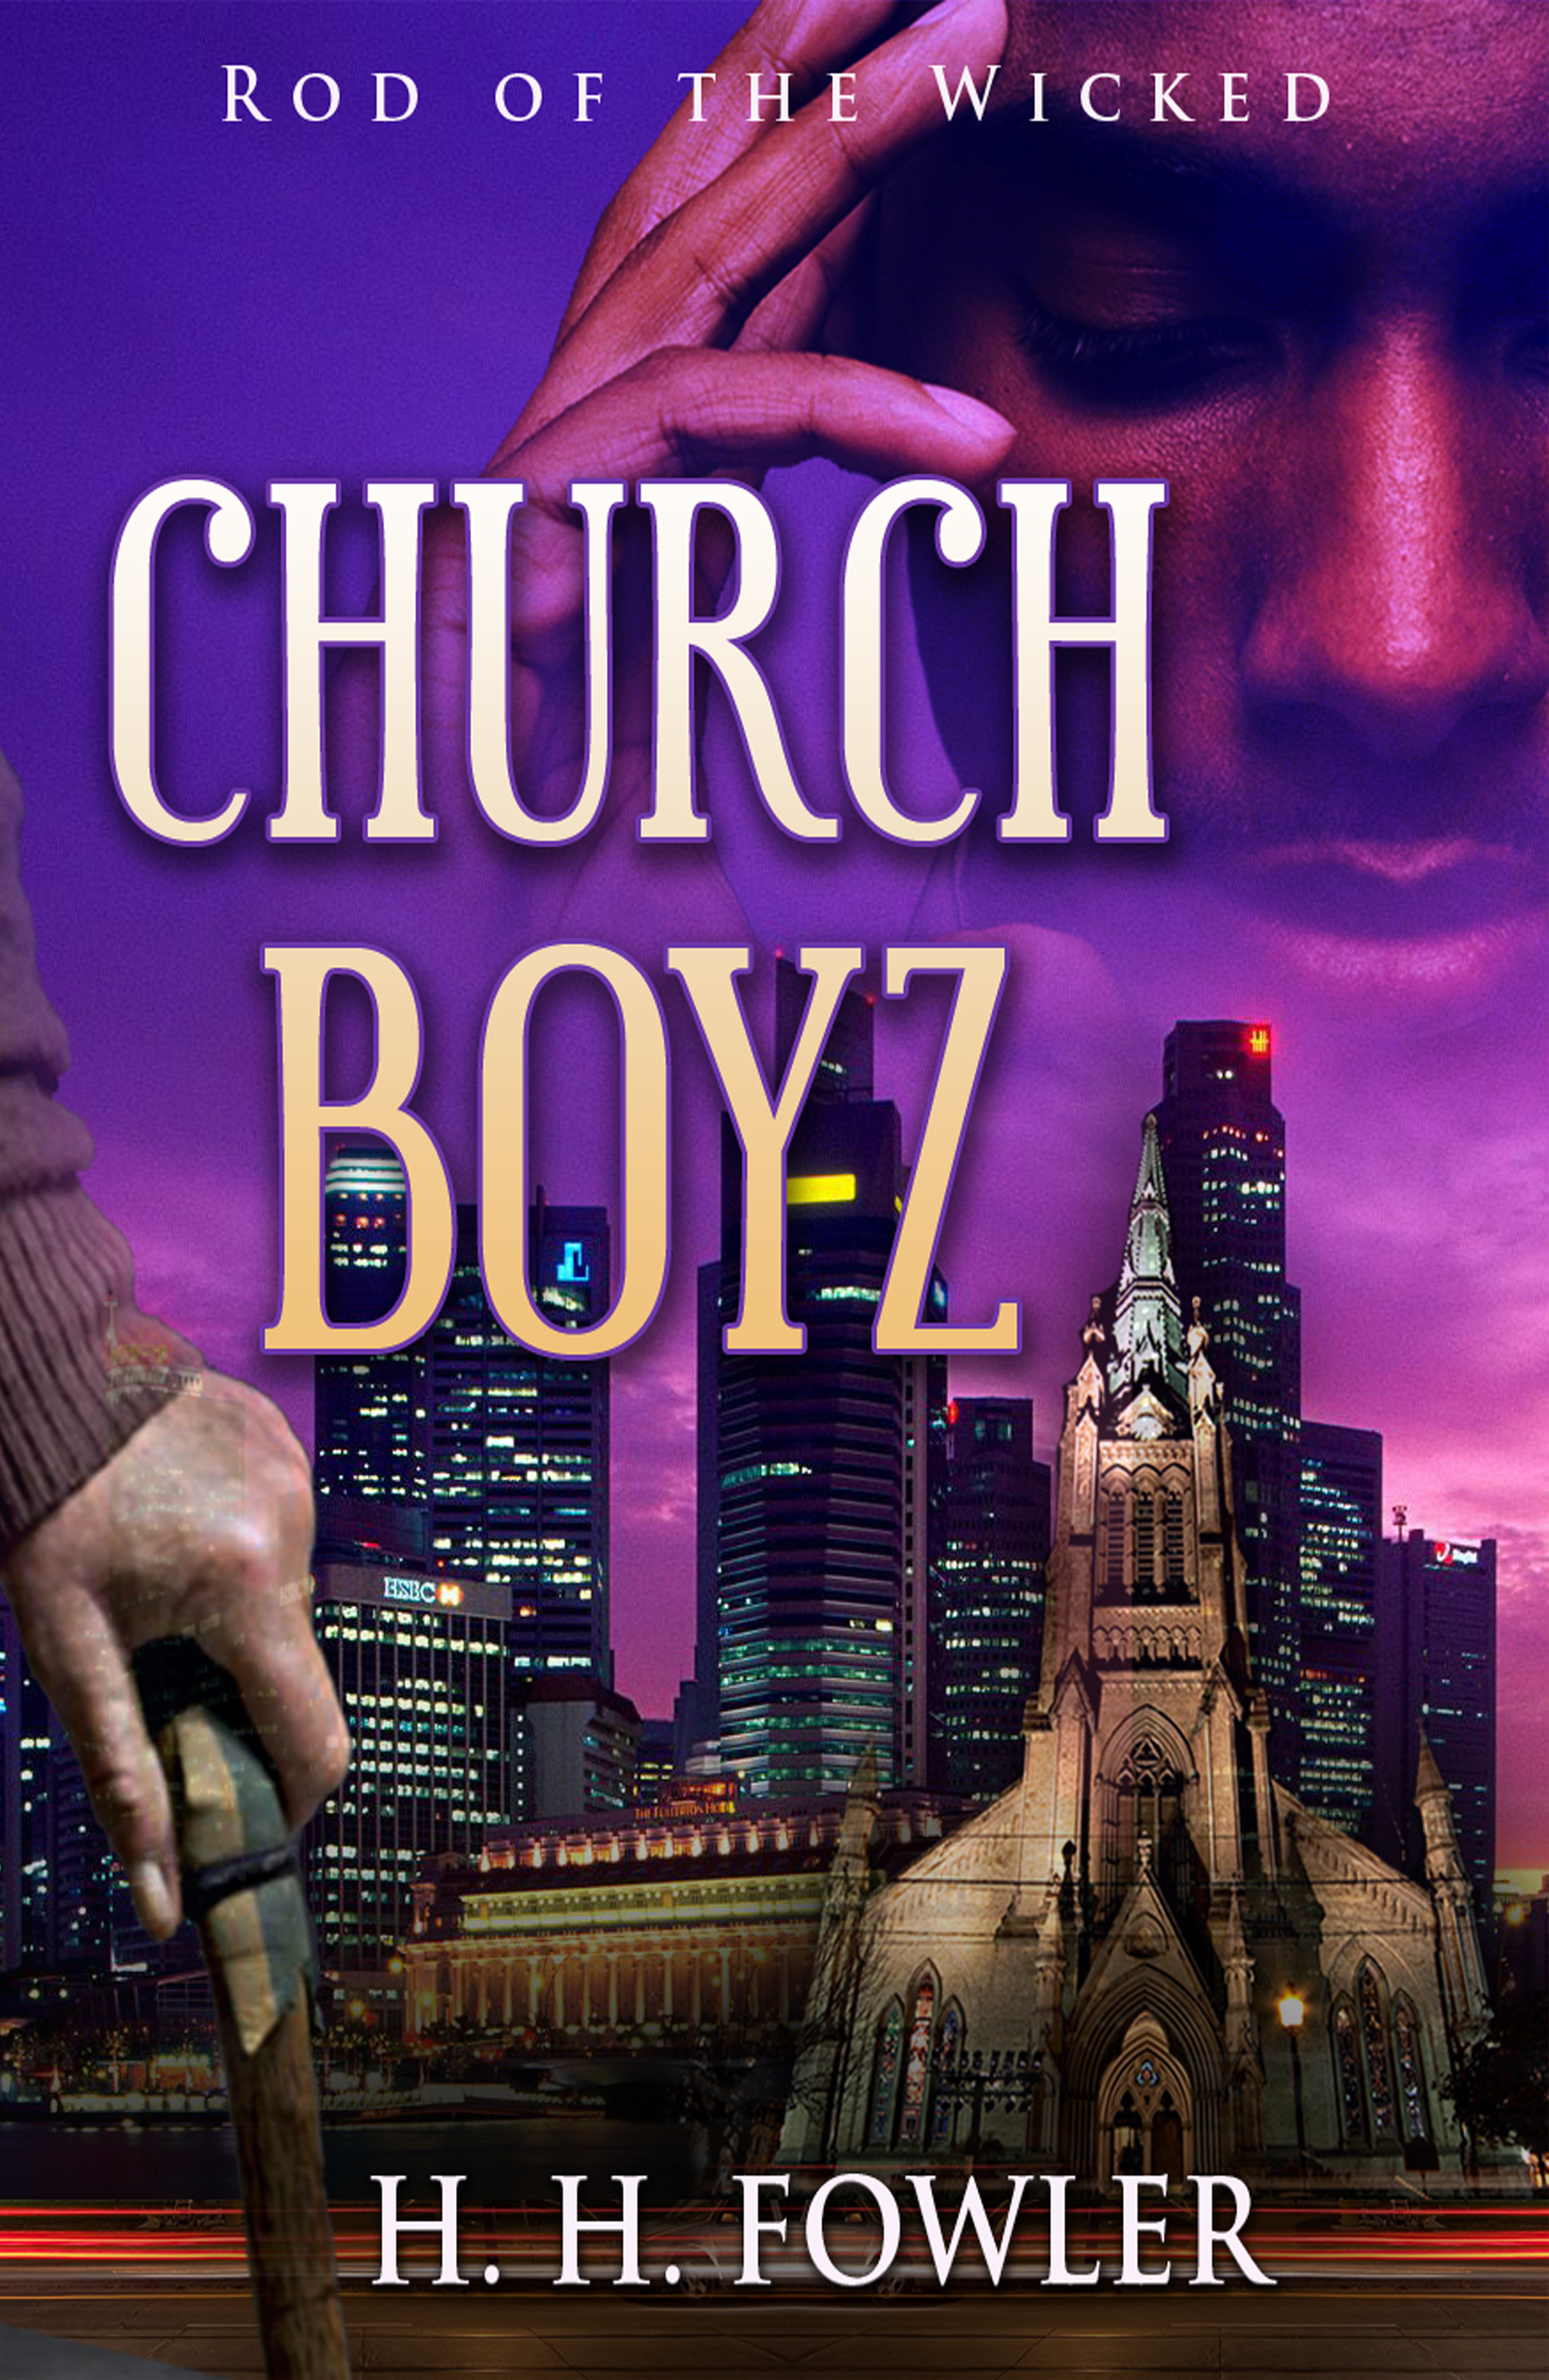 Church Boyz 1 (Rod of the Wicked) (sst-cii)